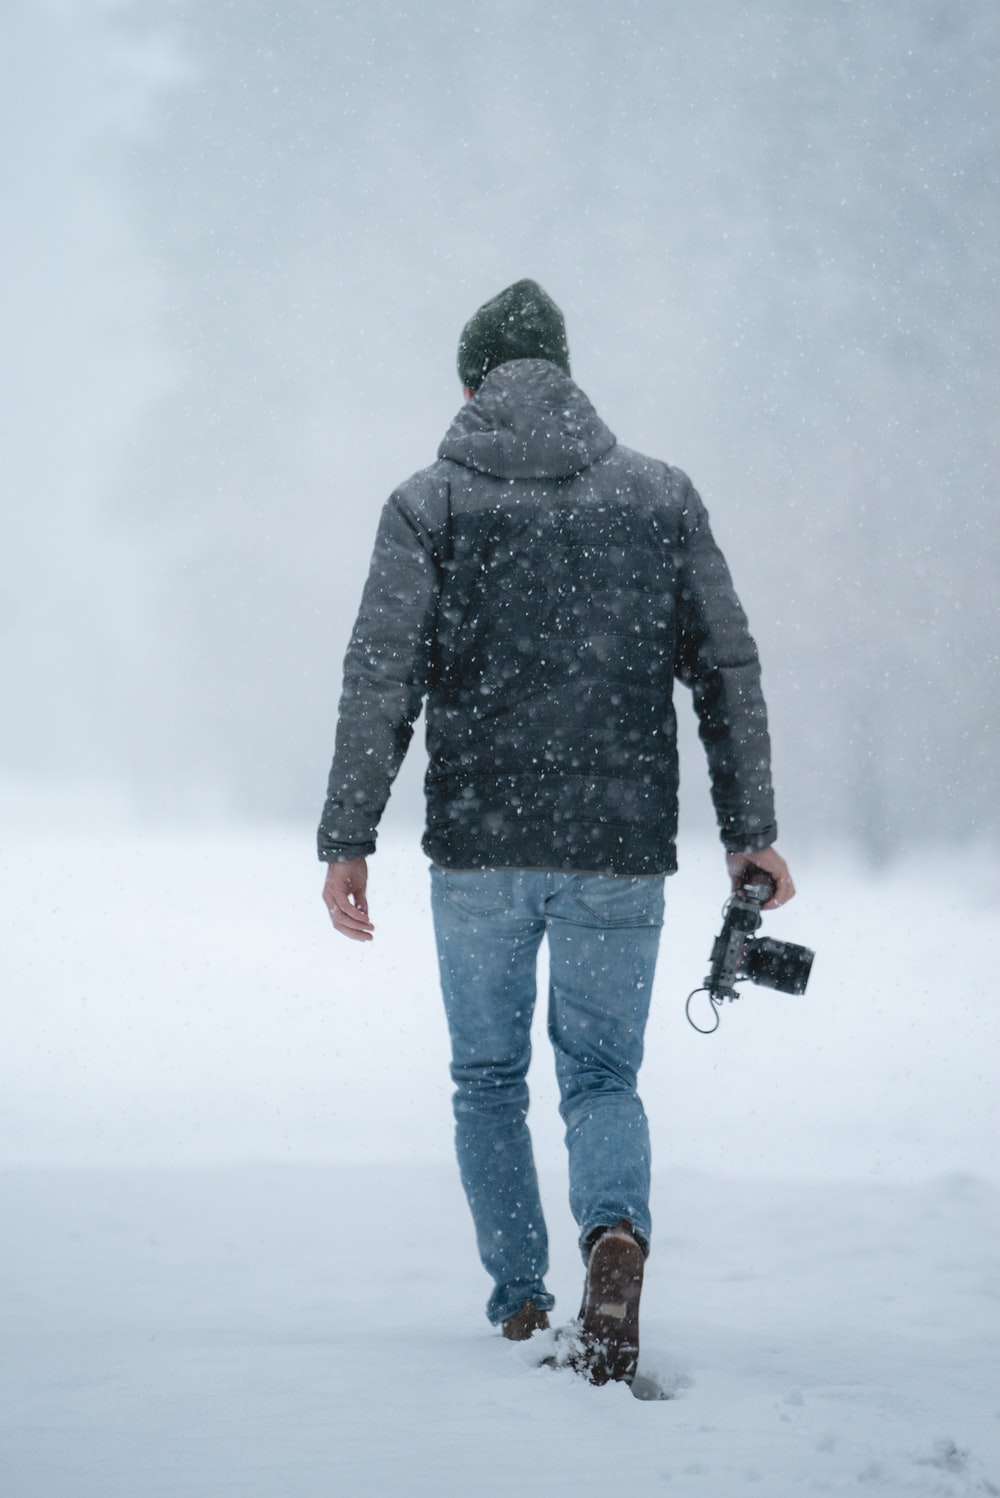 man in gray jacket holding camera while walking on snow